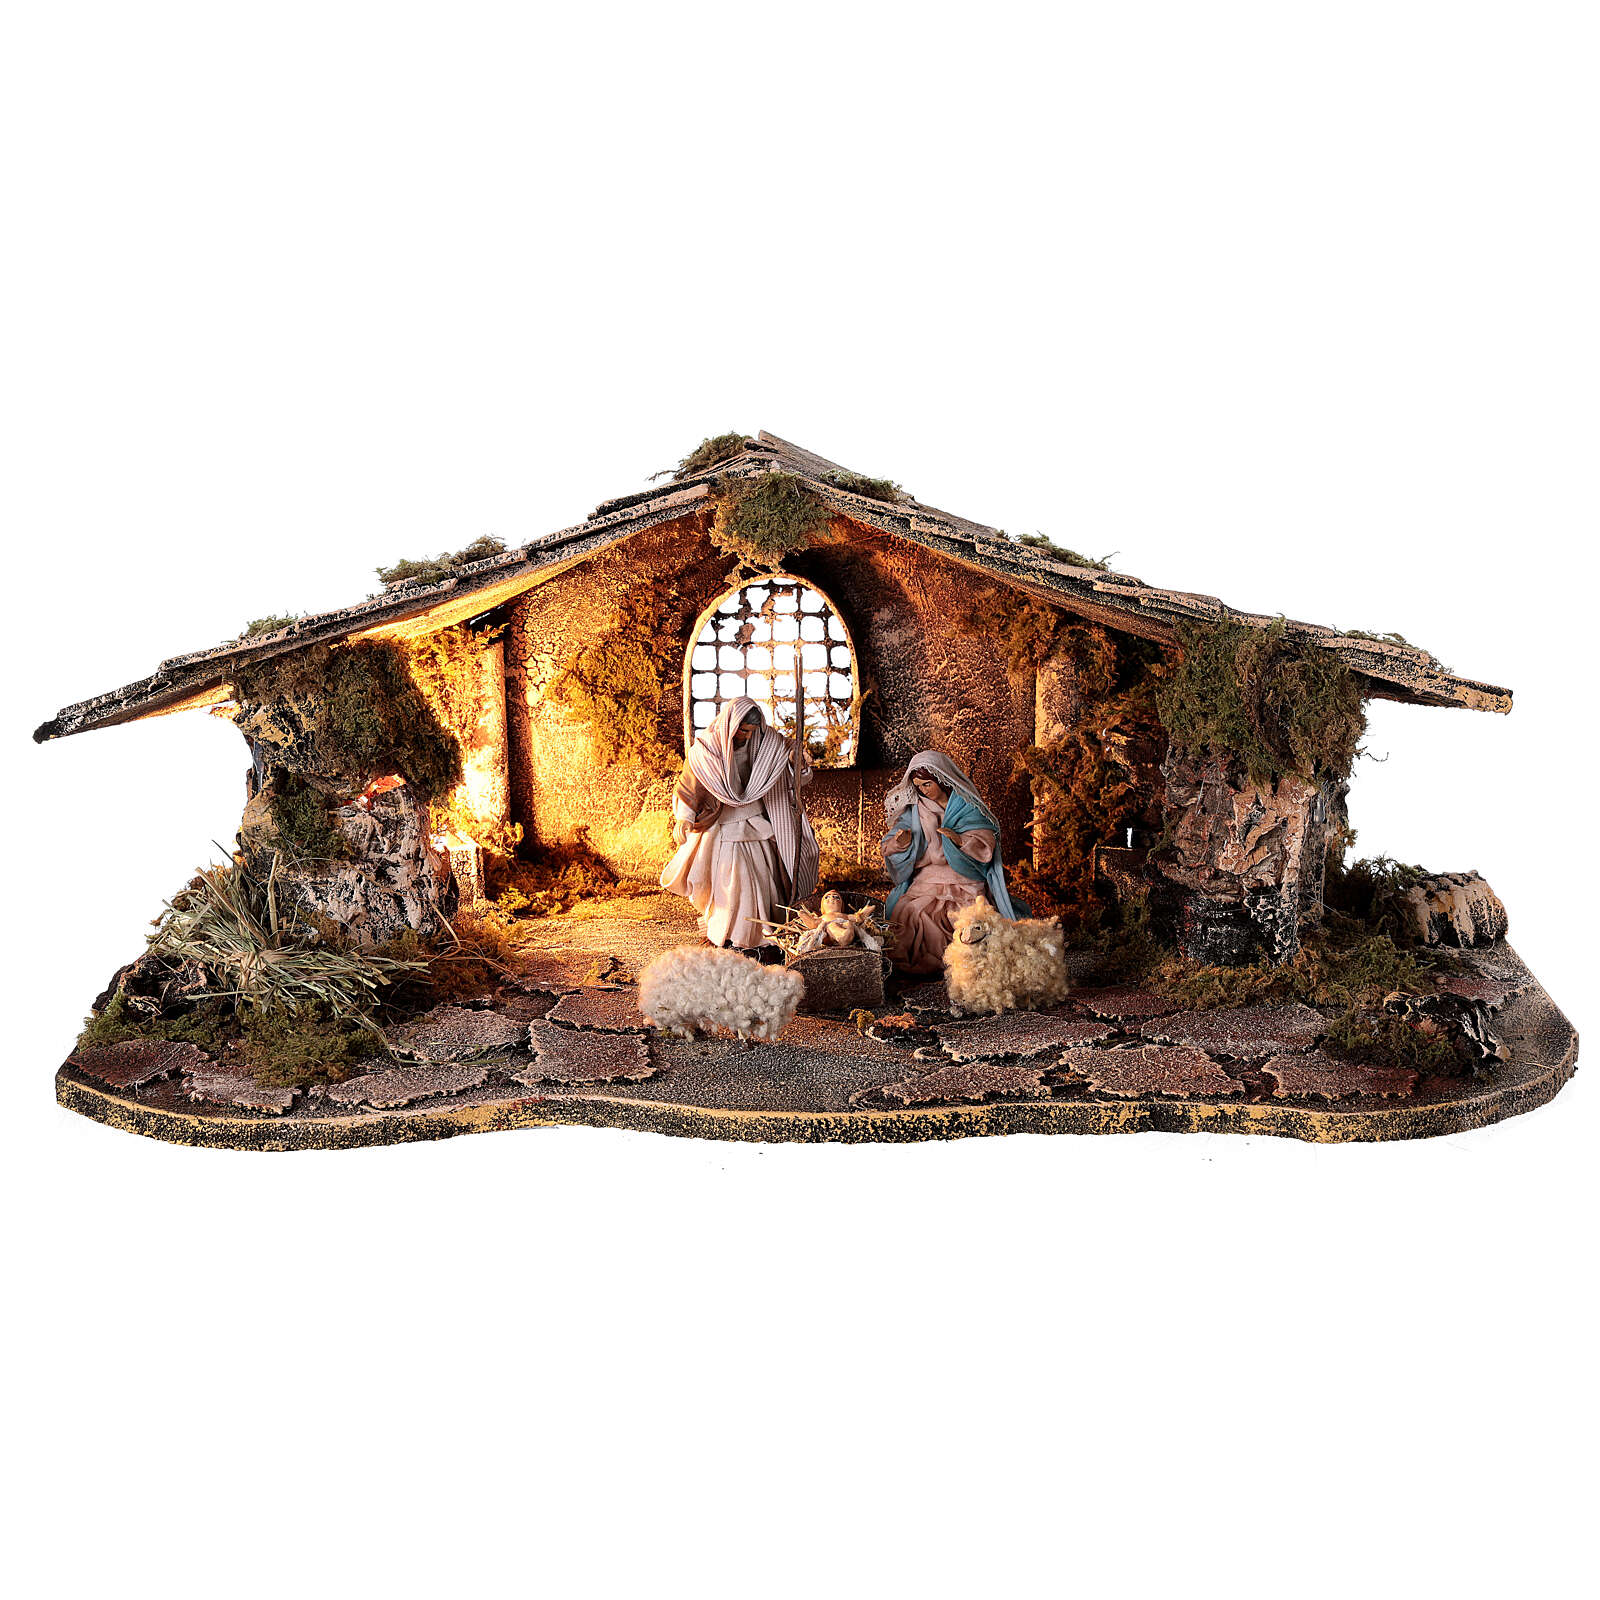 Rustic nativity stable 10 cm Neapolitan nativity statues 30x50x20 cm 4